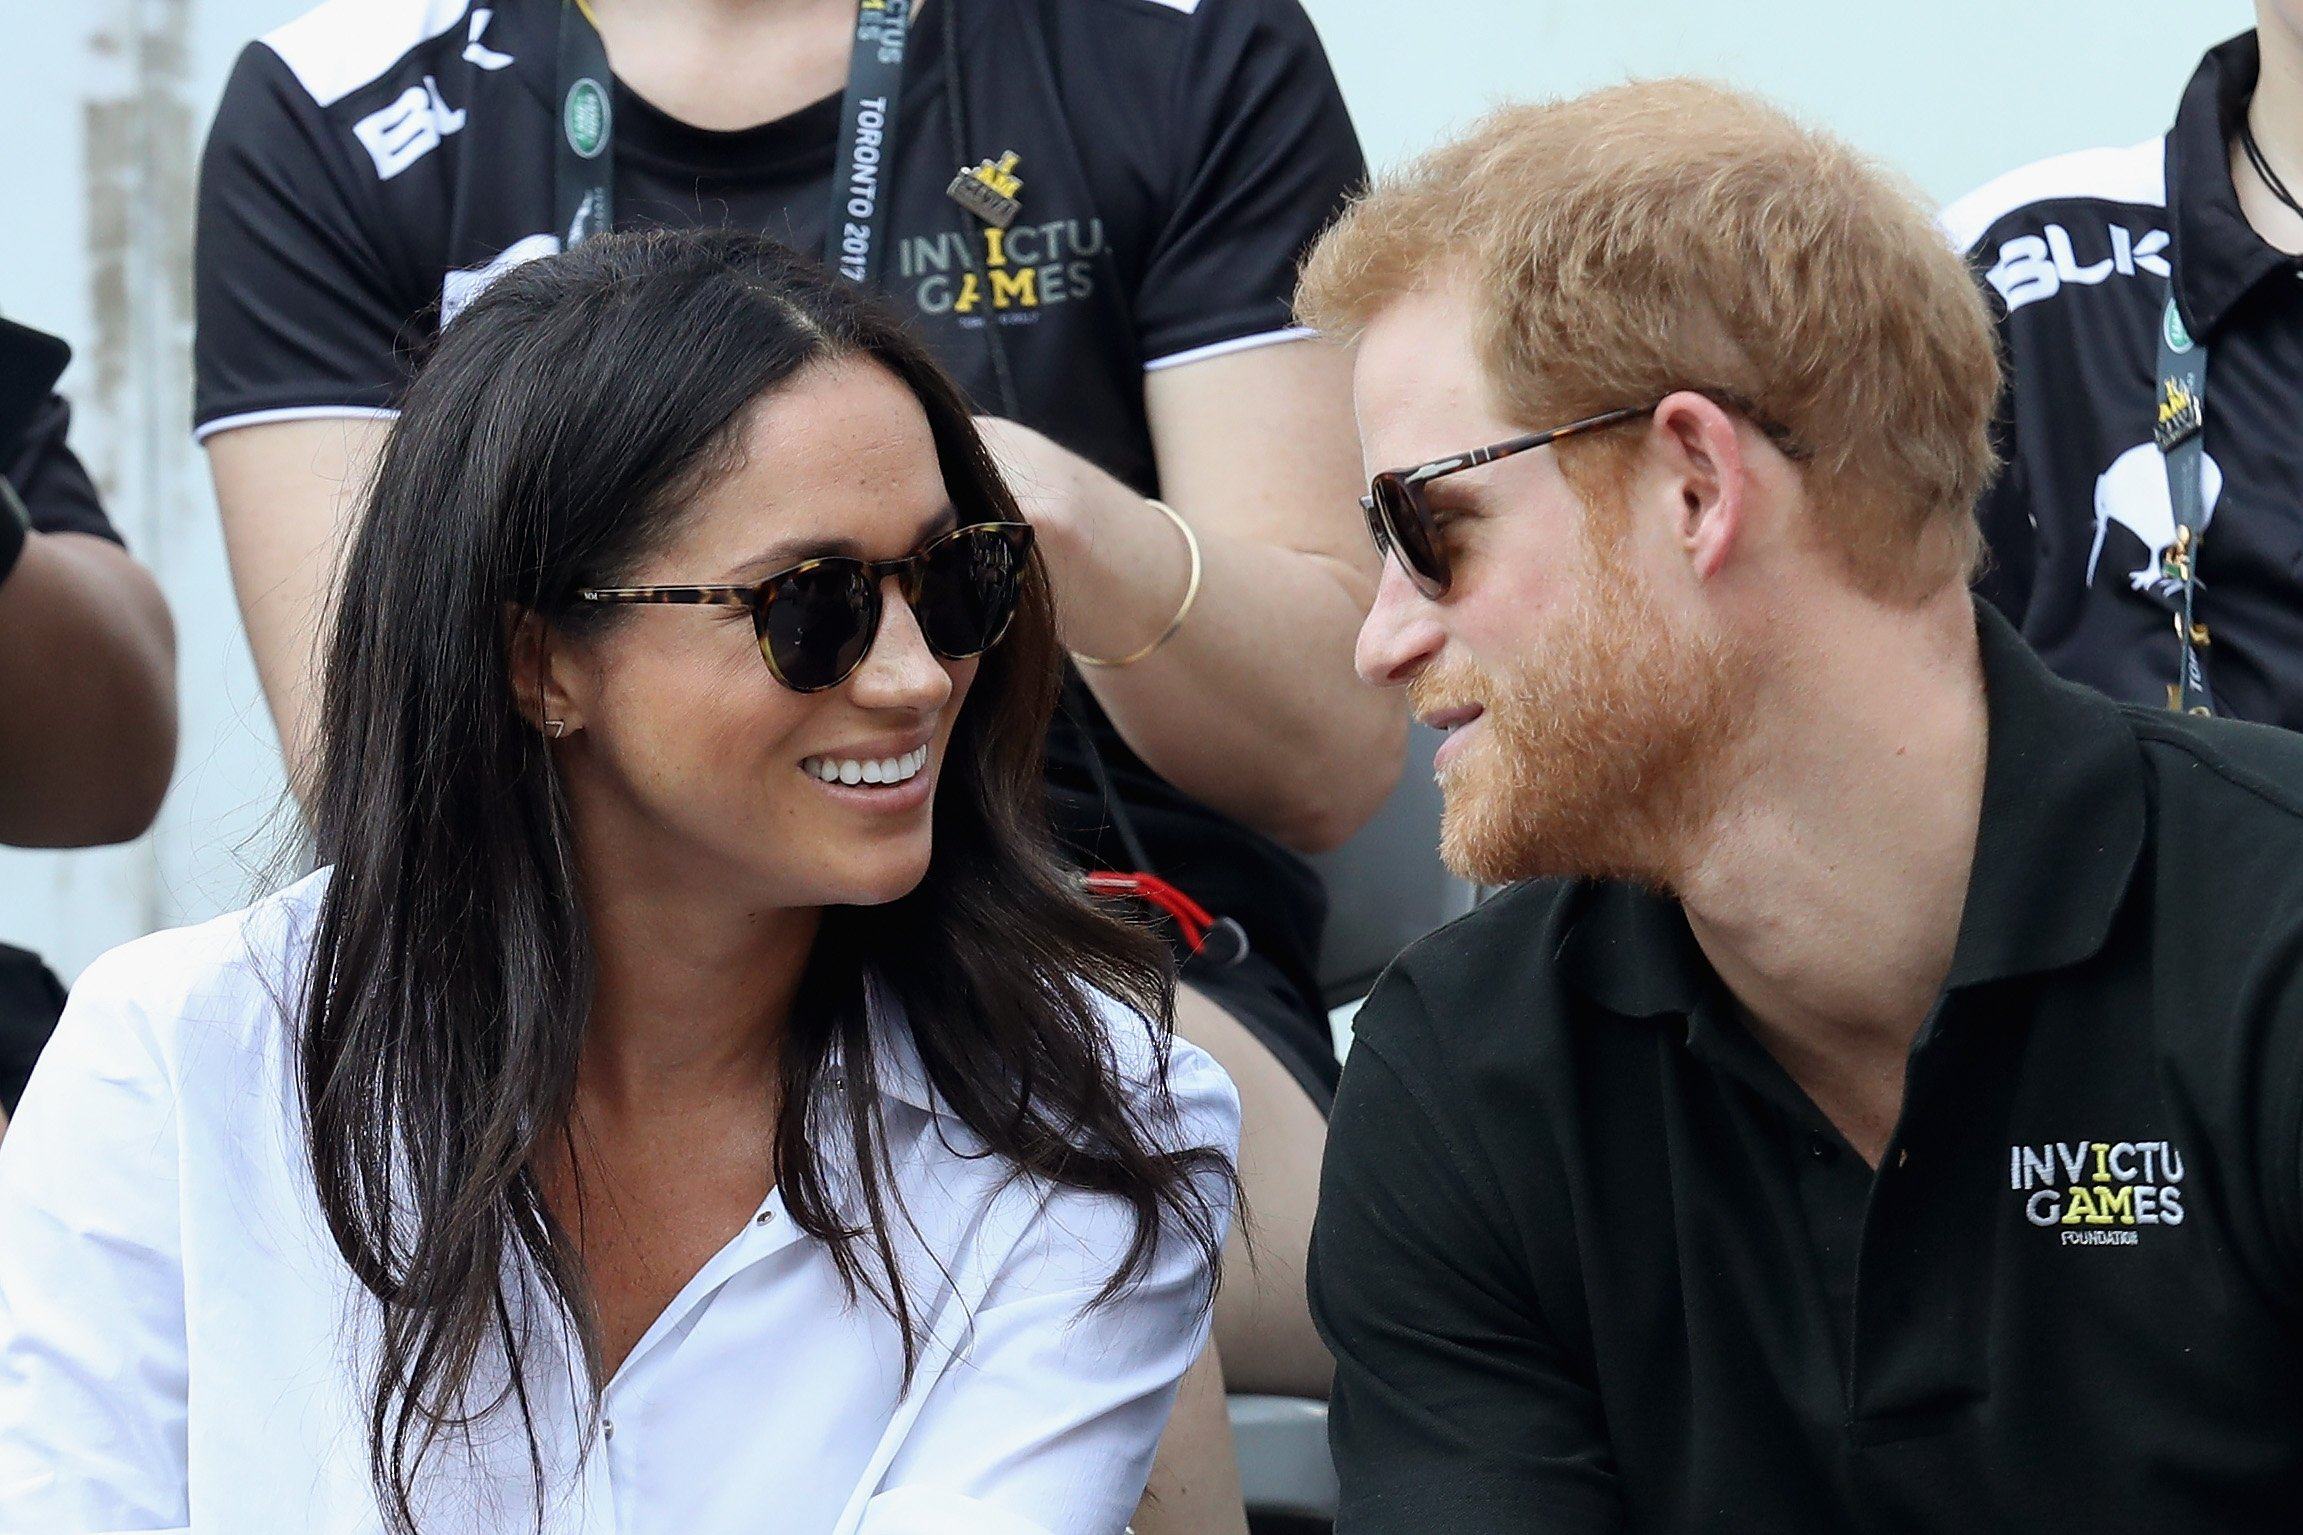 Prince Harry and Meghan Markle attend a Wheelchair Tennis match during the Invictus Games 2017 at Nathan Philips Square on September 25, 2017 in Toronto, Canada | Photo: Getty Images